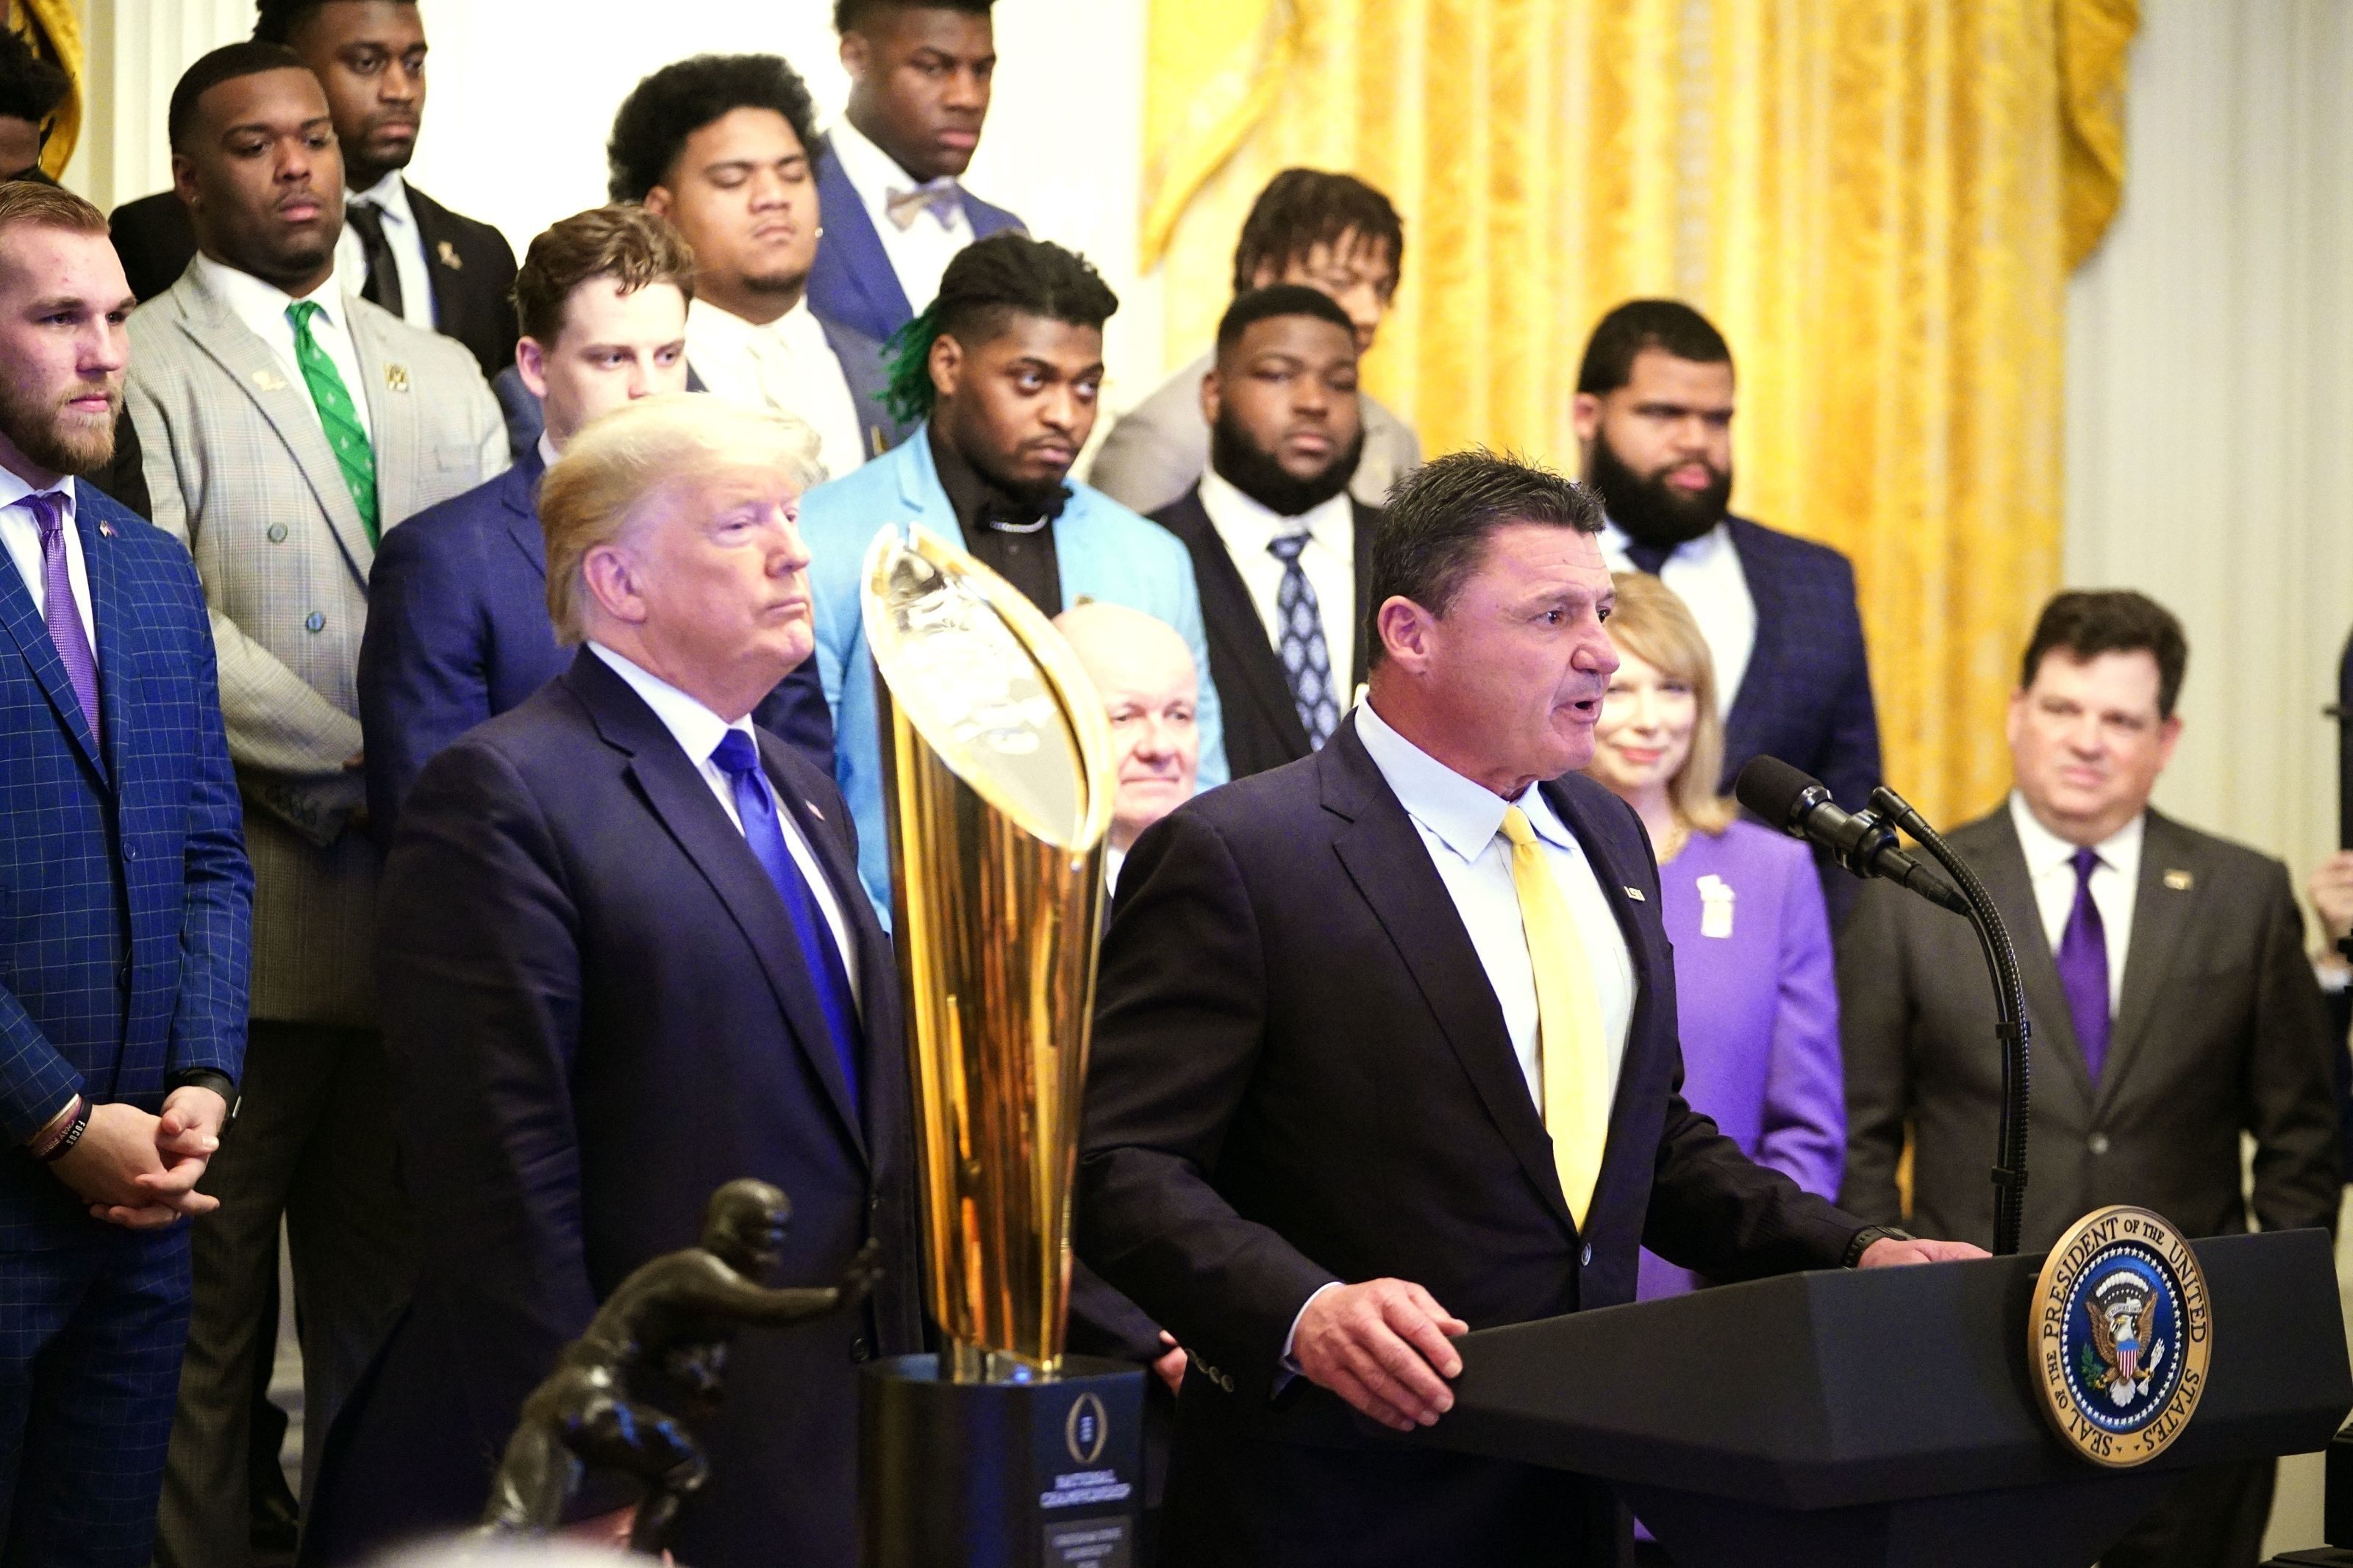 LSU's Get the Gat celebration dance goes viral at the White House